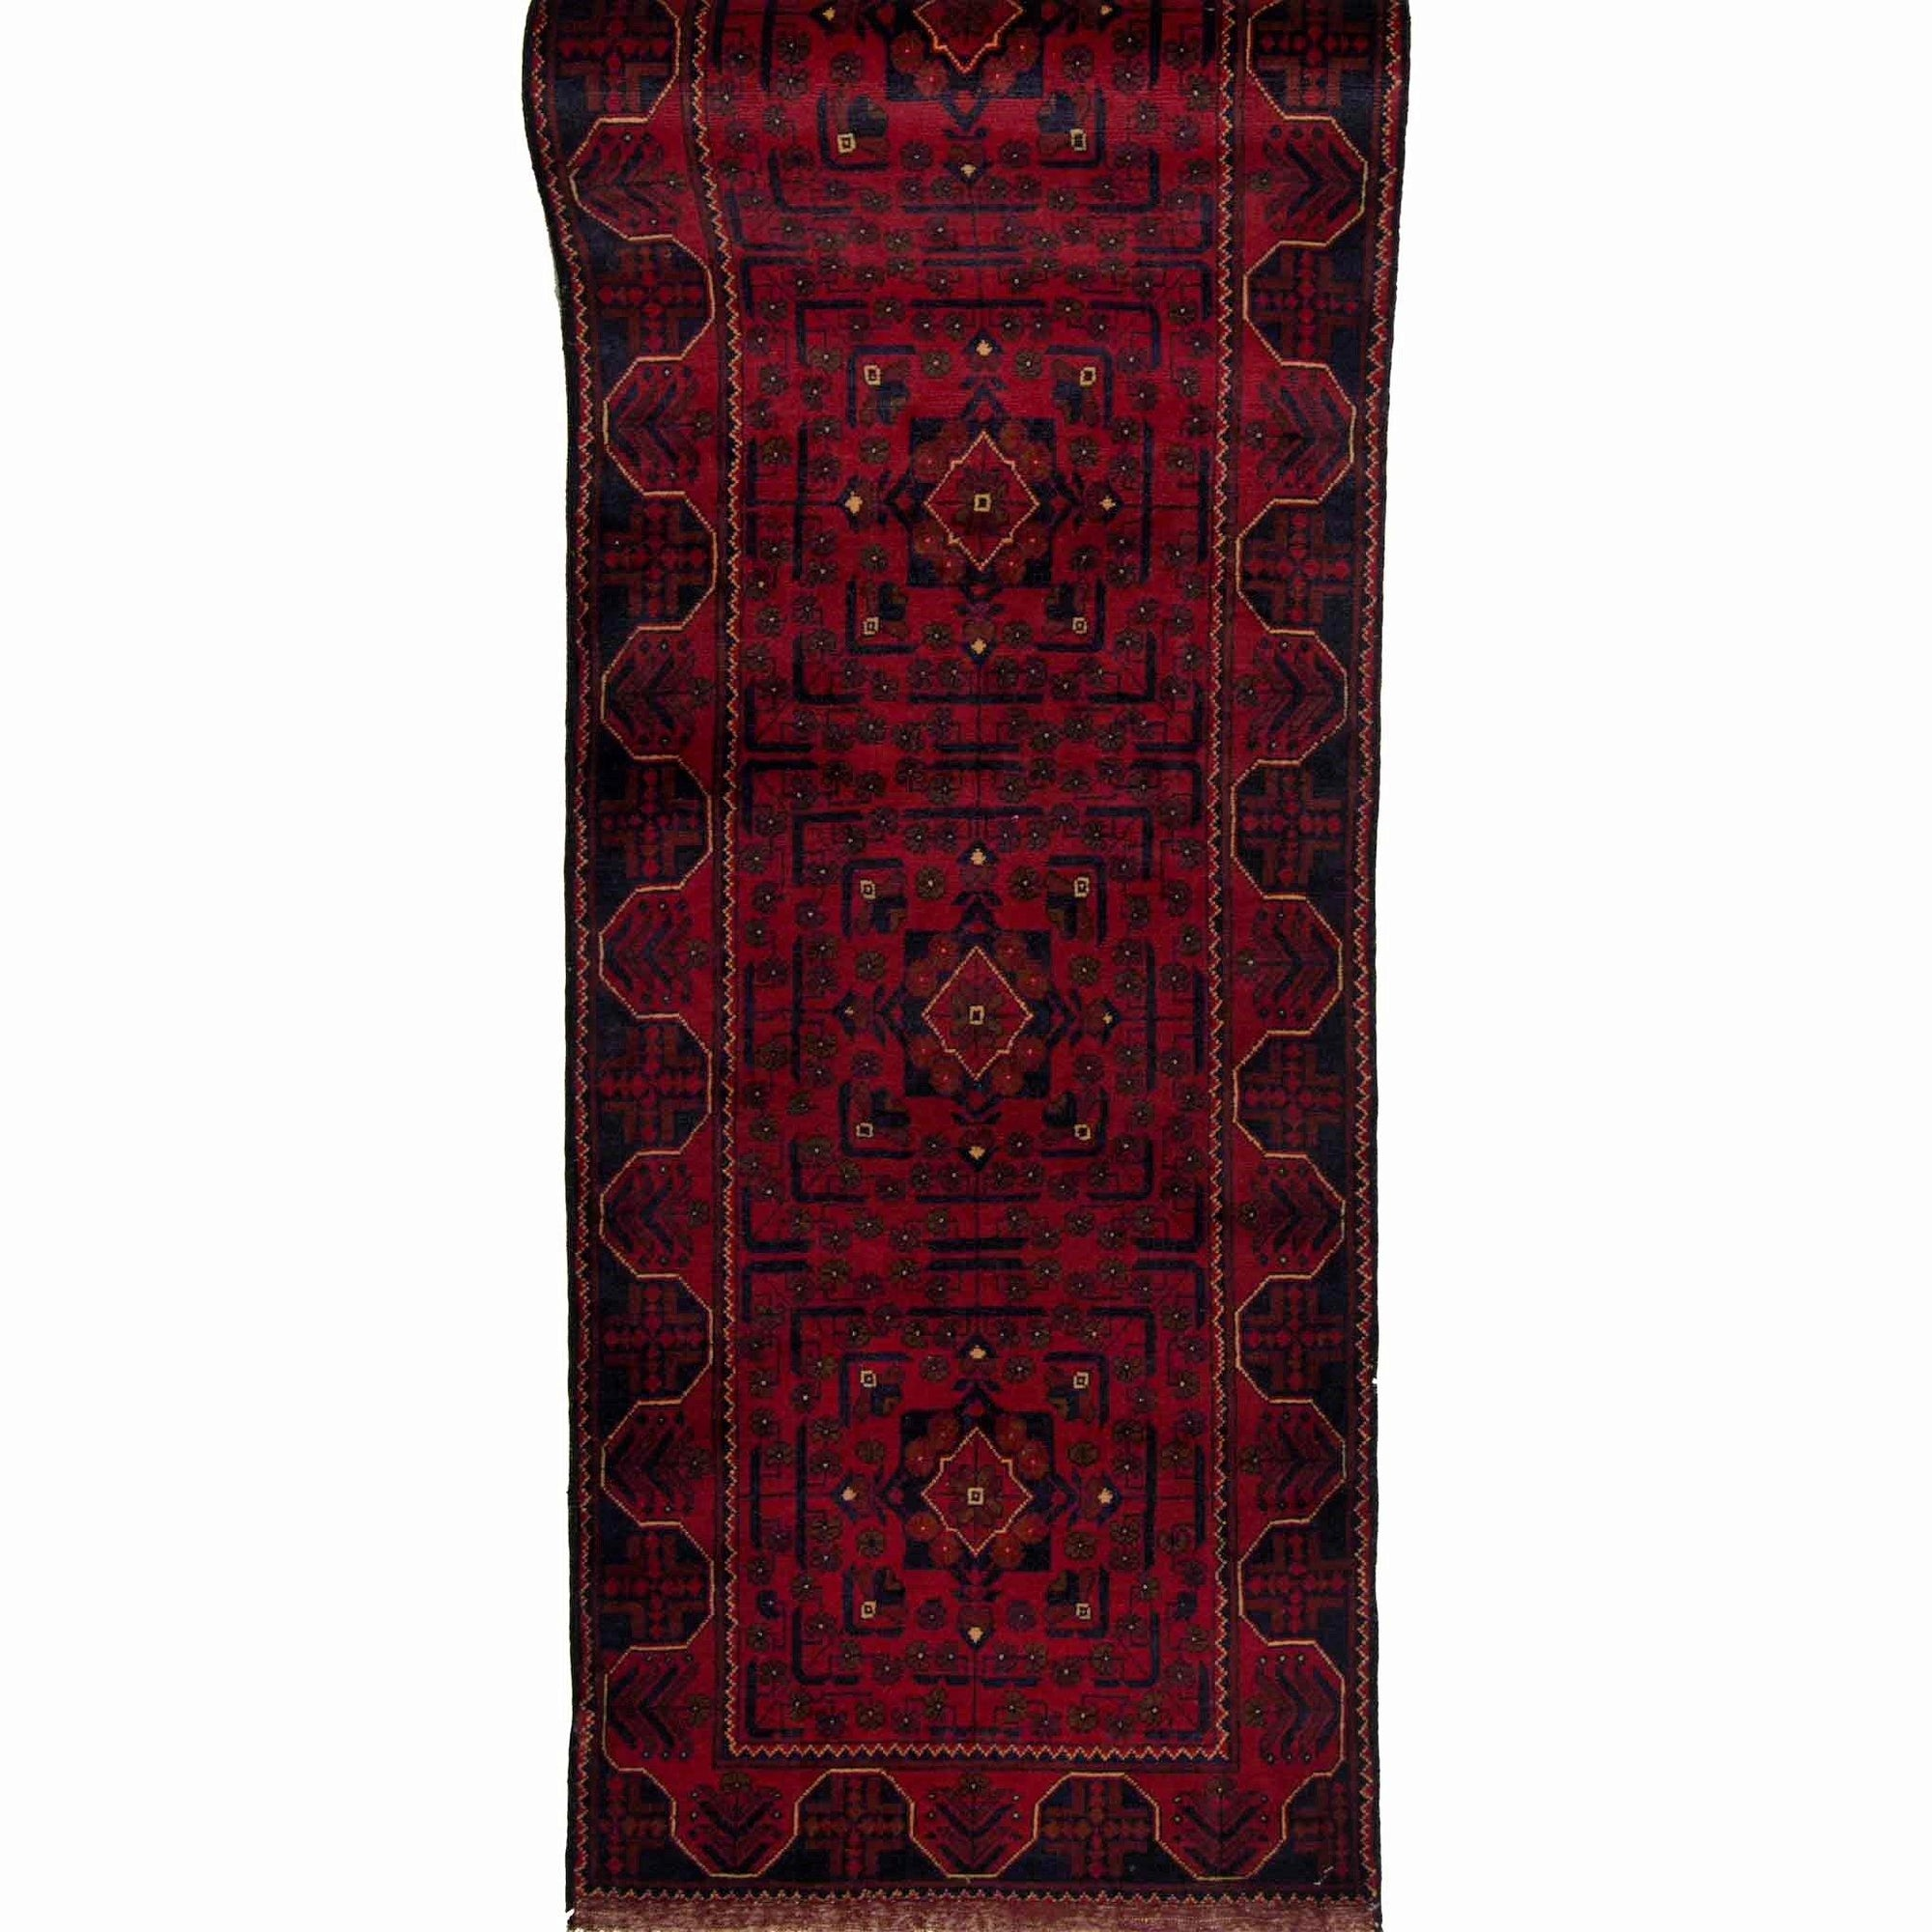 Fine Hand-knotted Wool Afghan Khal Mohammadi Runner 74cm x 578cm Persian-Rug | House-of-Haghi | NewMarket | Auckland | NZ | Handmade Persian Rugs | Hand Knotted Persian Rugs